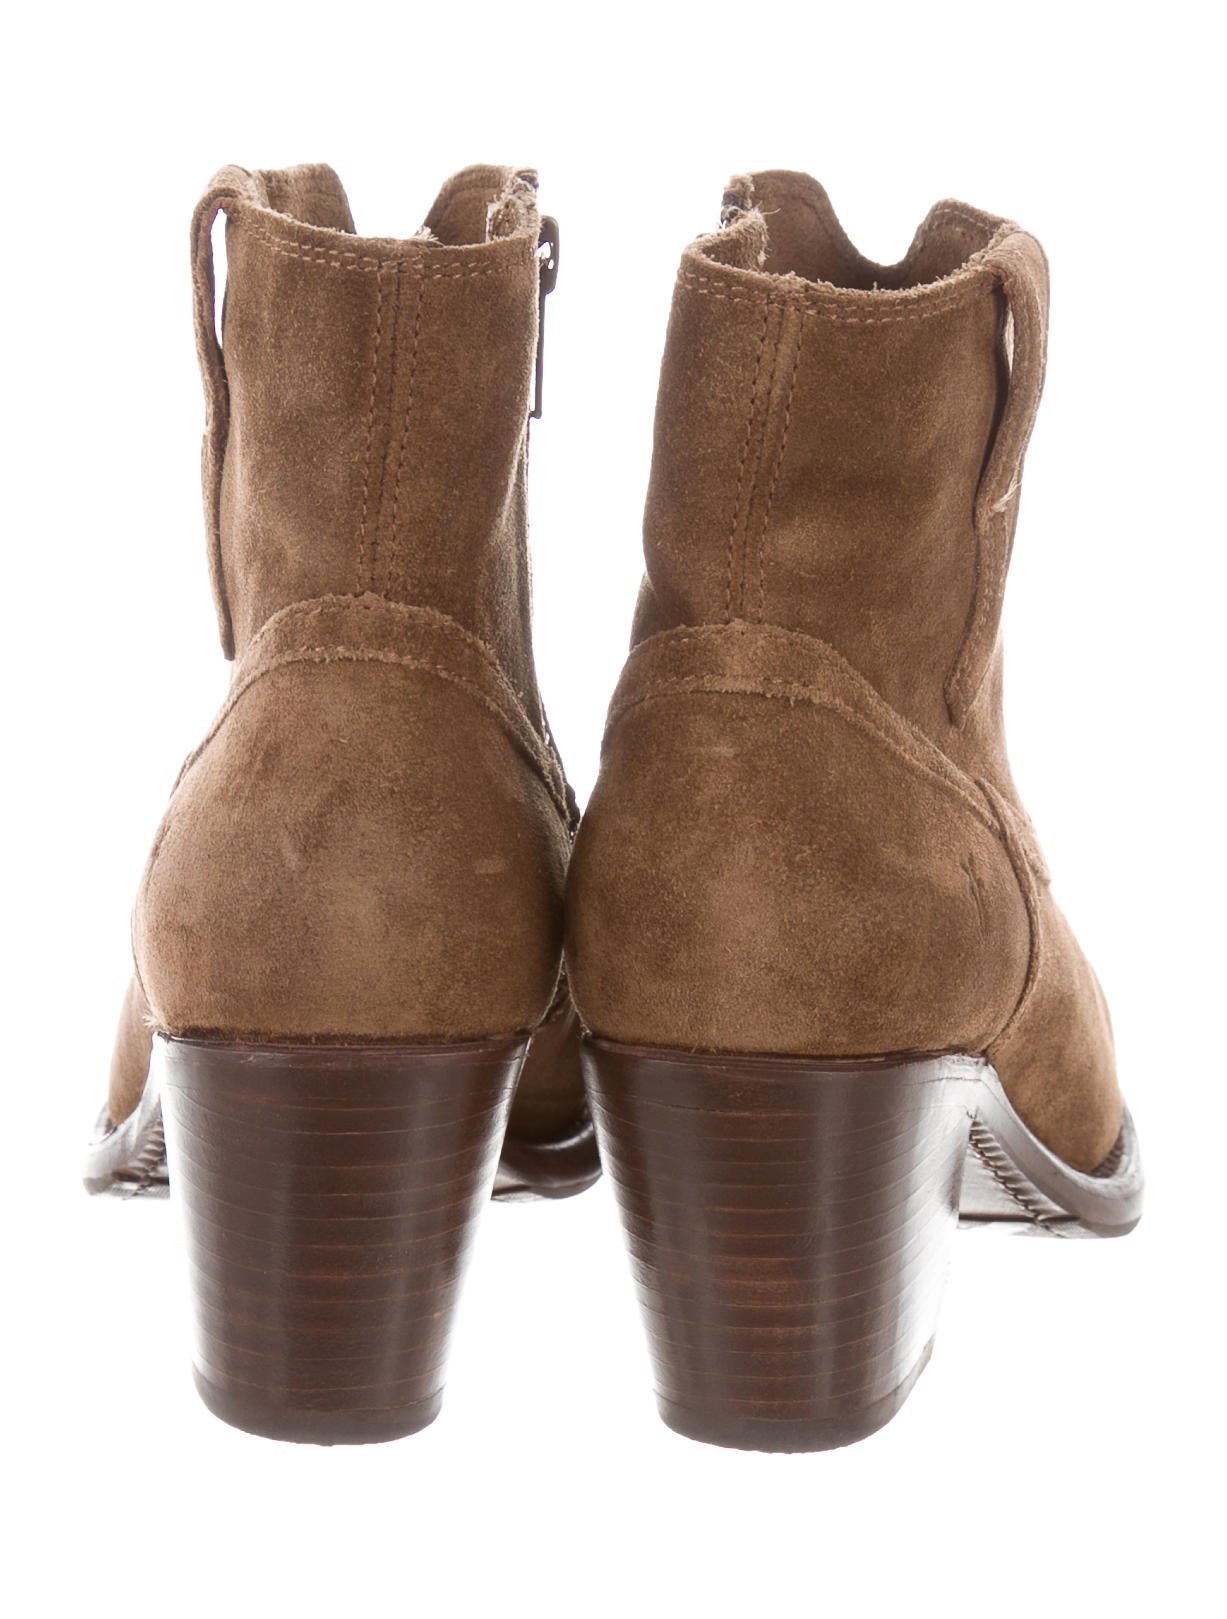 Frye Suede Ankle Boots Shoes Wf821426 The Realreal